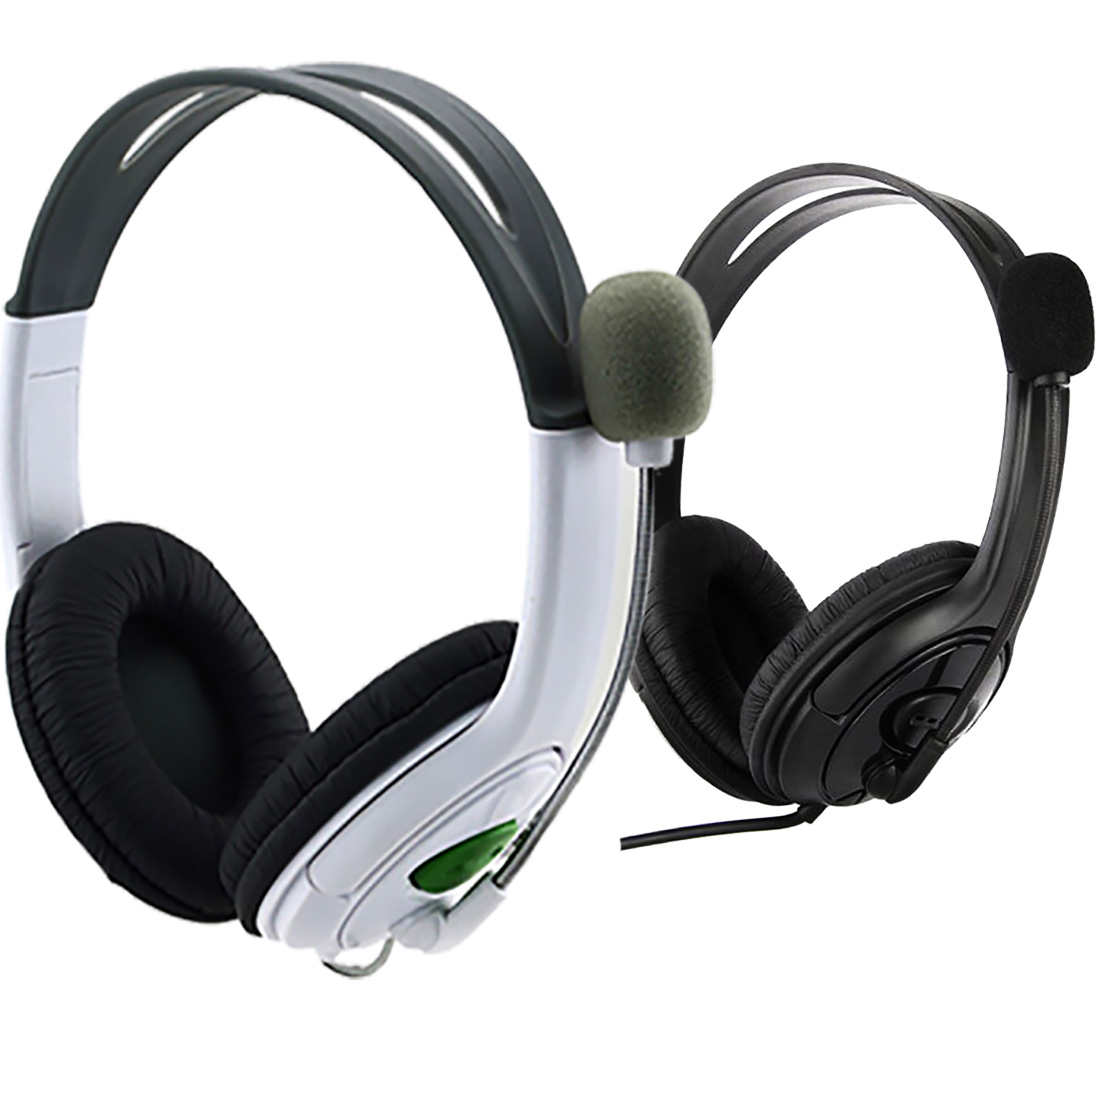 Marsnaska PC Gamer Over-ear Game Gaming Headphone Headset usb dual Earphone Headband with Mic Stereo Bass for ps3 pc